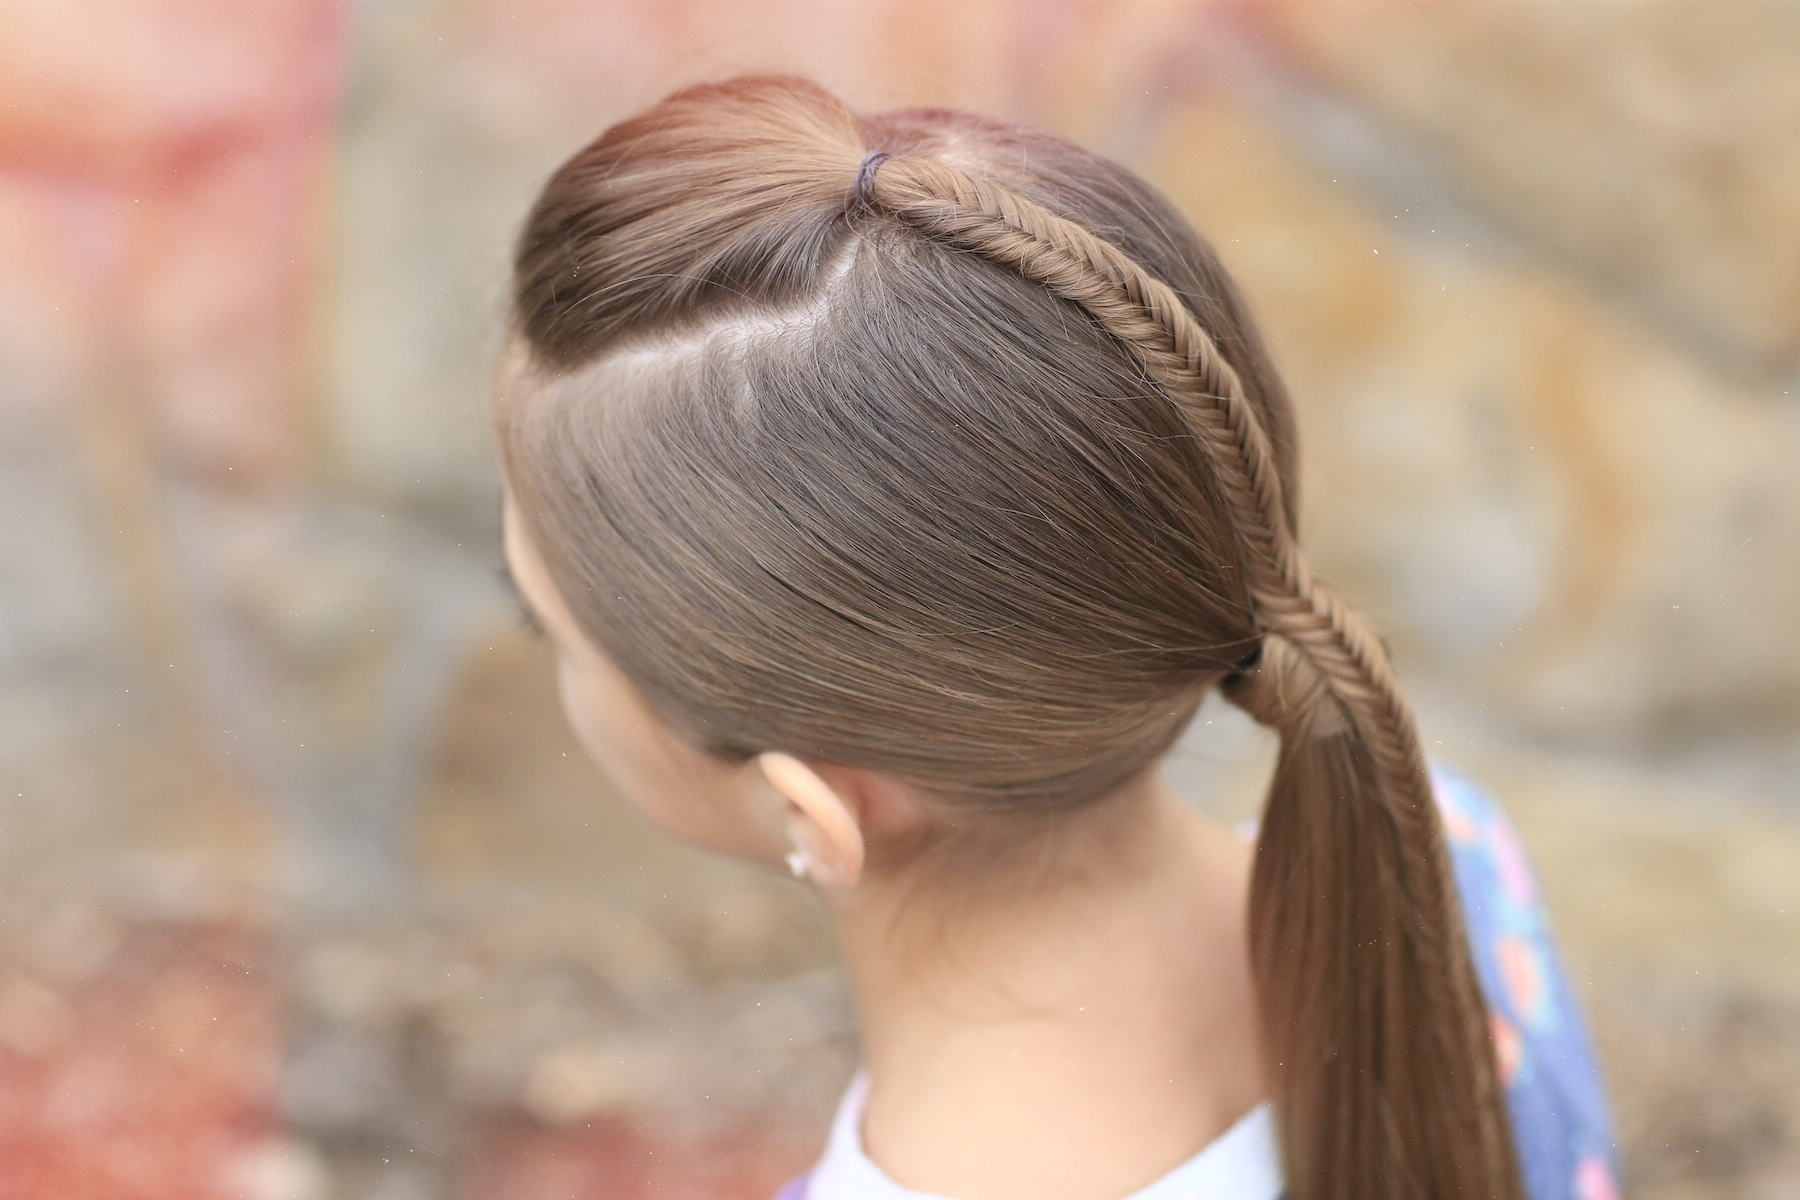 Hairstyles For Sports (View 11 of 20)